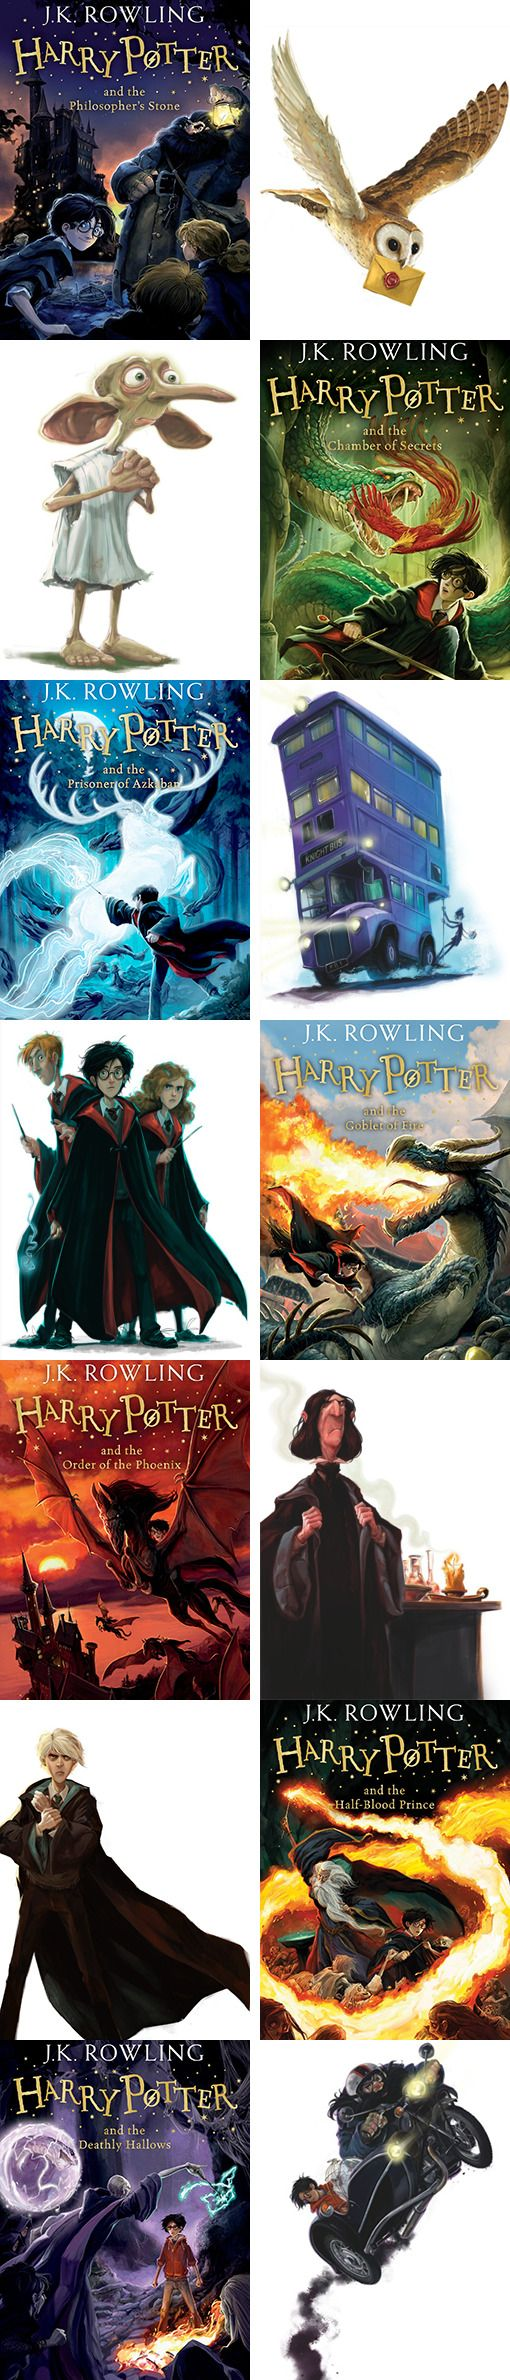 Here are the new UK Harry Potter covers you won't be able to buy. - Harry Potter's publisher, Bloomsbury, announced a new line of covers for the book series. - The UK Harry Potter cover illustrations by Jonny Duddle + the front and back covers